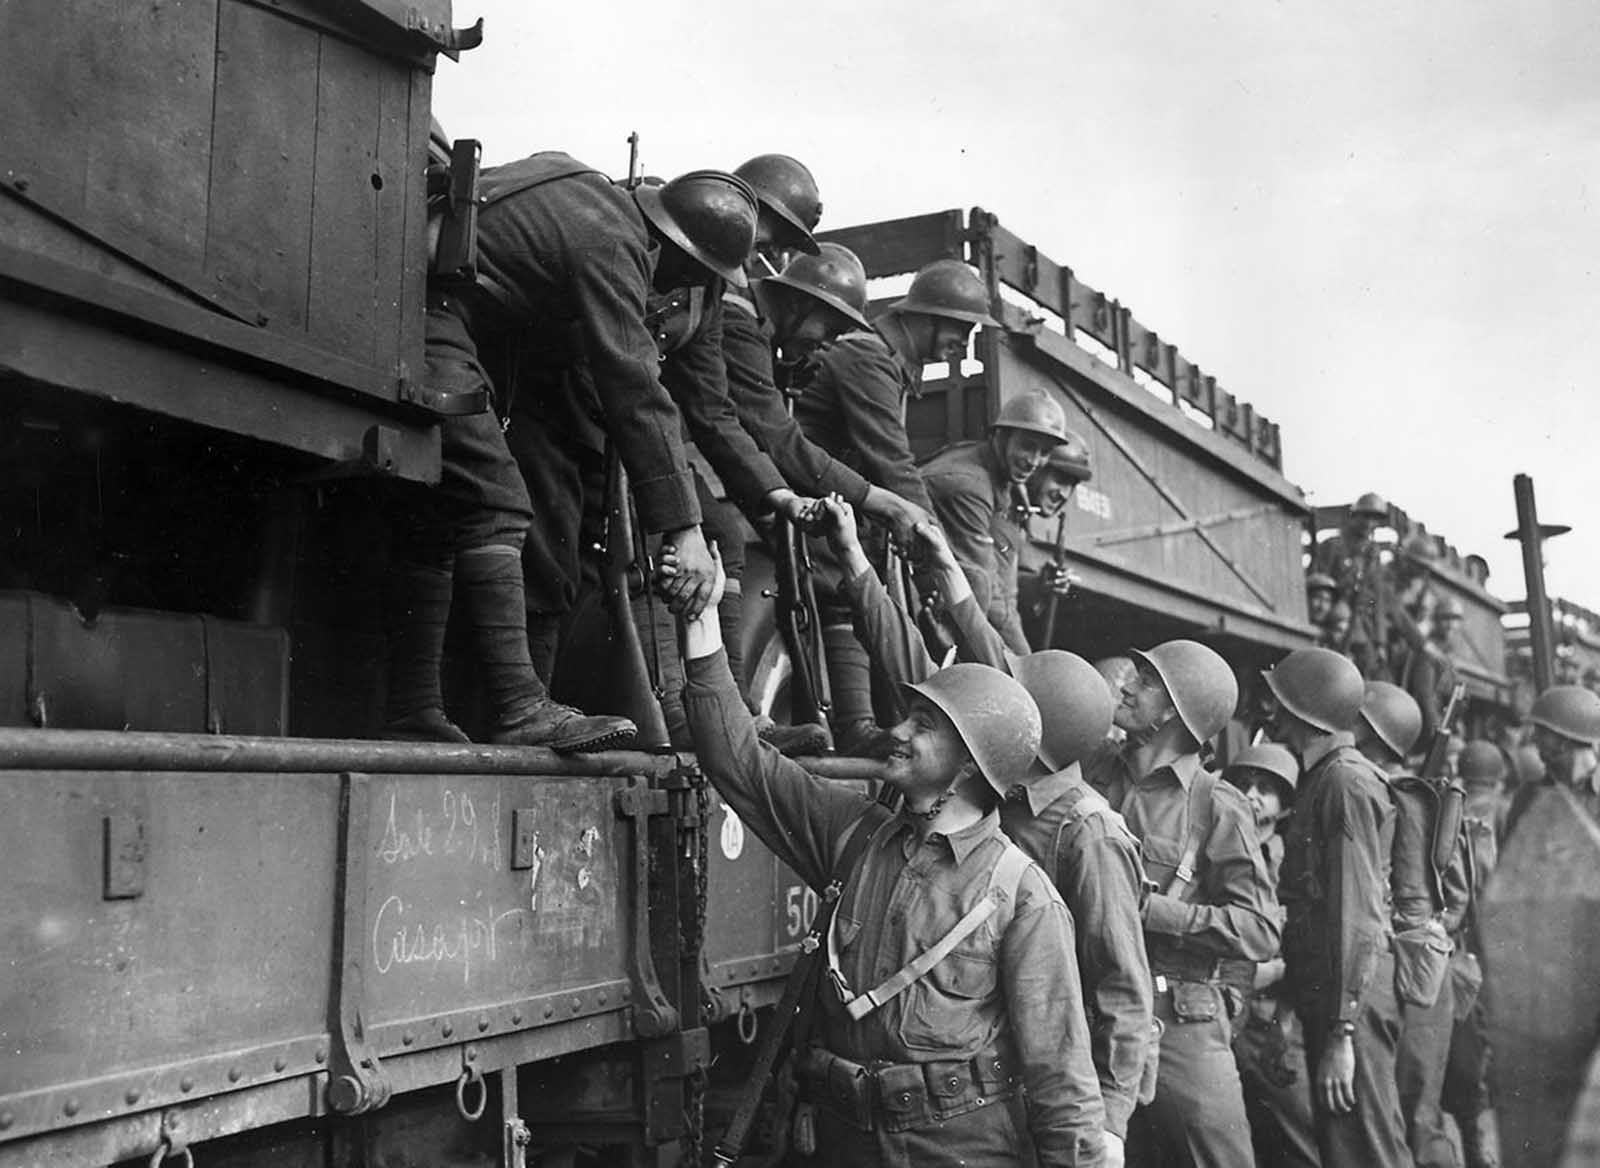 French troops on their way to the fighting lines in Tunisia shake hands with American soldiers at the rail station in Oran, Algeria, North Africa, on December 2, 1942.